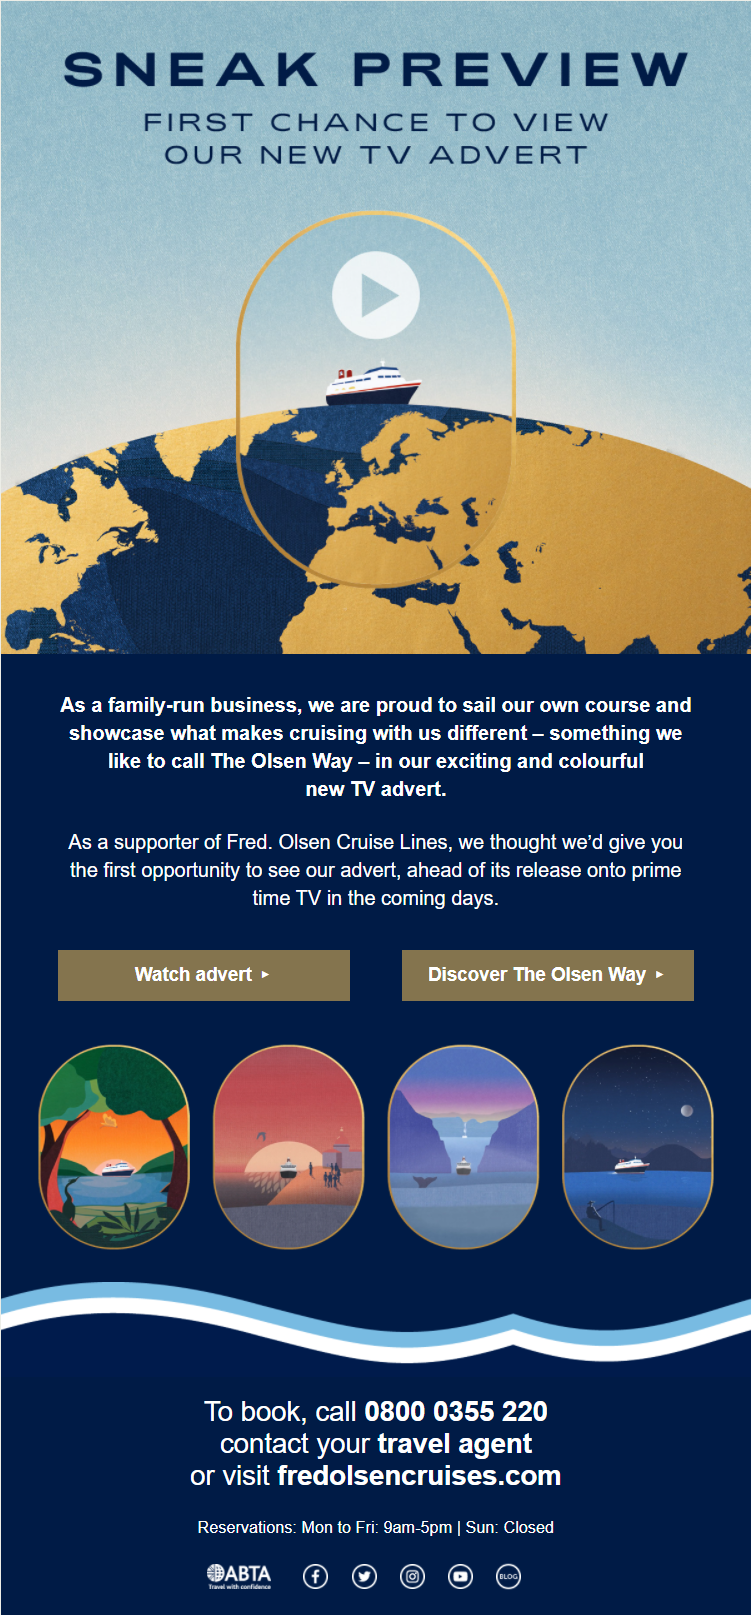 fred-olsen-cruise-lines-first-look-at-our-new-tv-advert